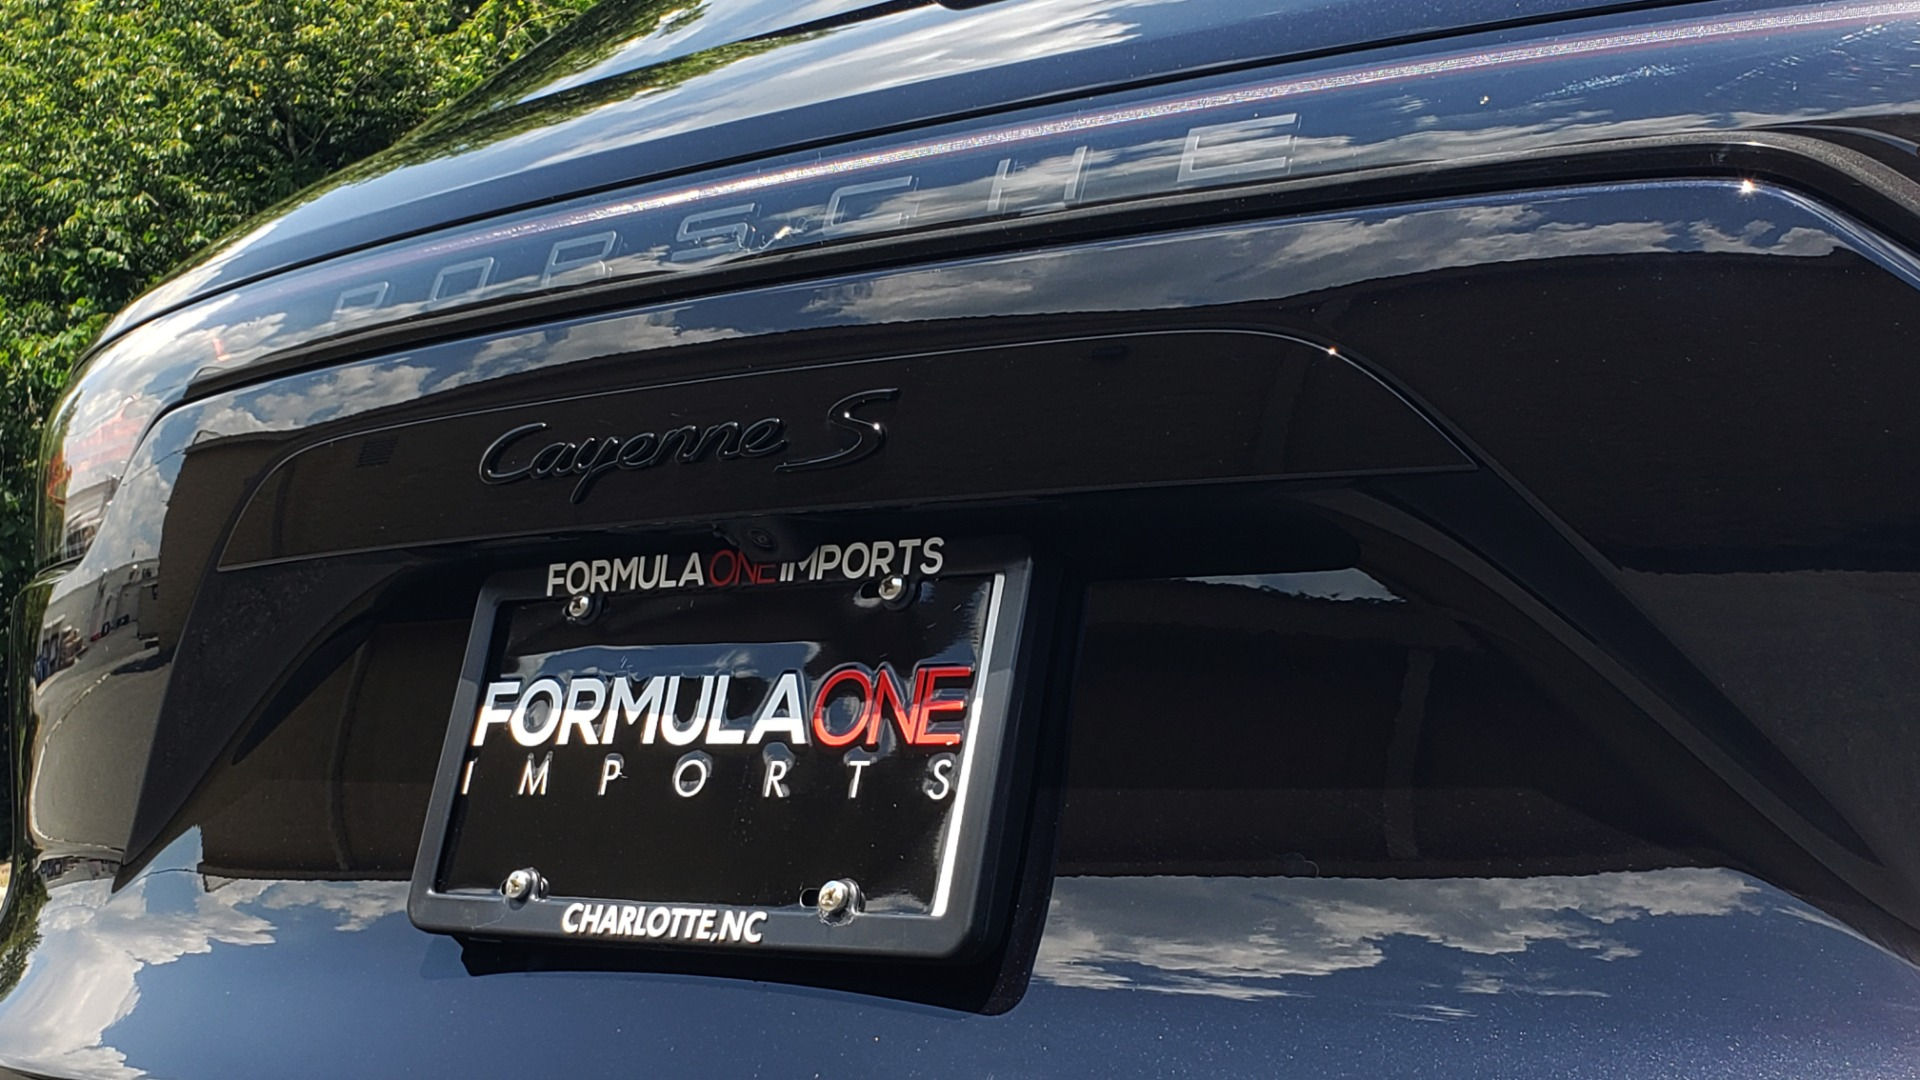 Used 2019 Porsche CAYENNE S AWD / NAV / SUNROOF / BOSE / REARVIEW / LOW MILES for sale Sold at Formula Imports in Charlotte NC 28227 38